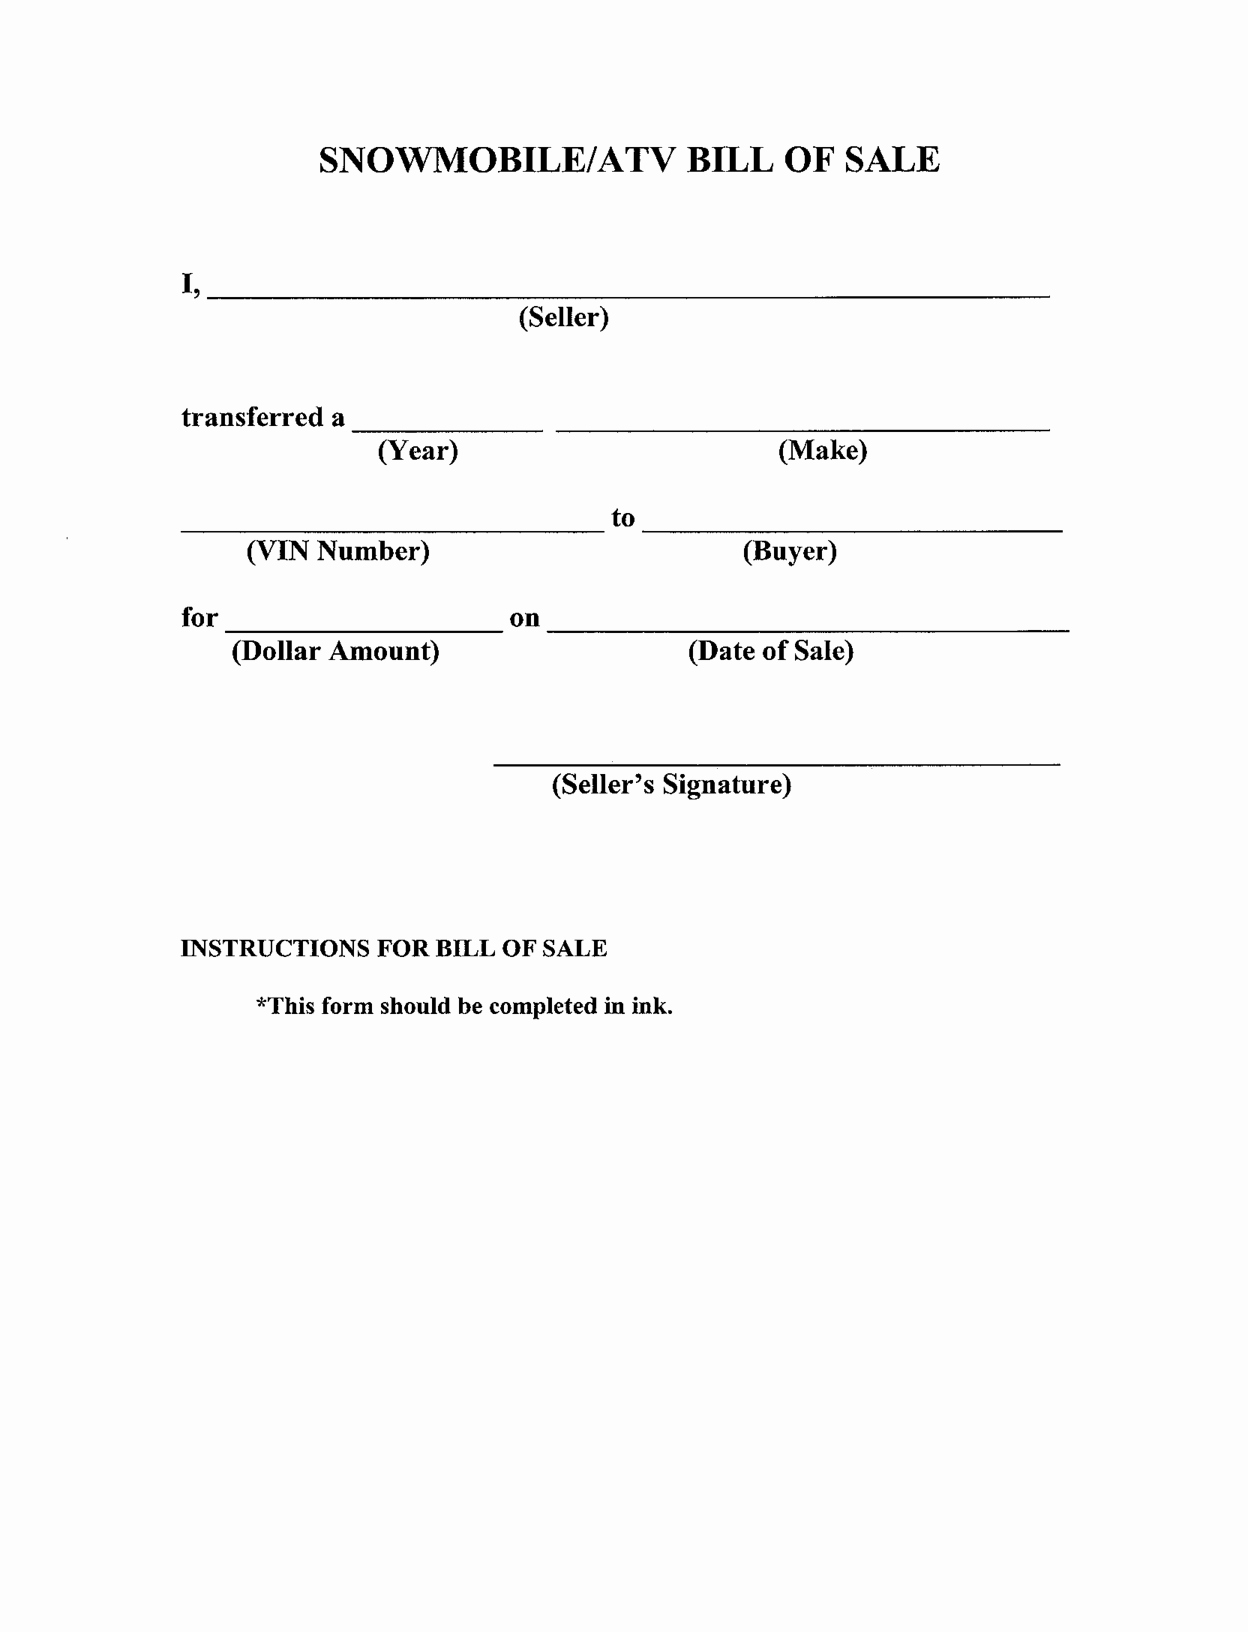 Basic Bill Of Sale Template Inspirational Free Printable Bill Of Sale Templates form Generic